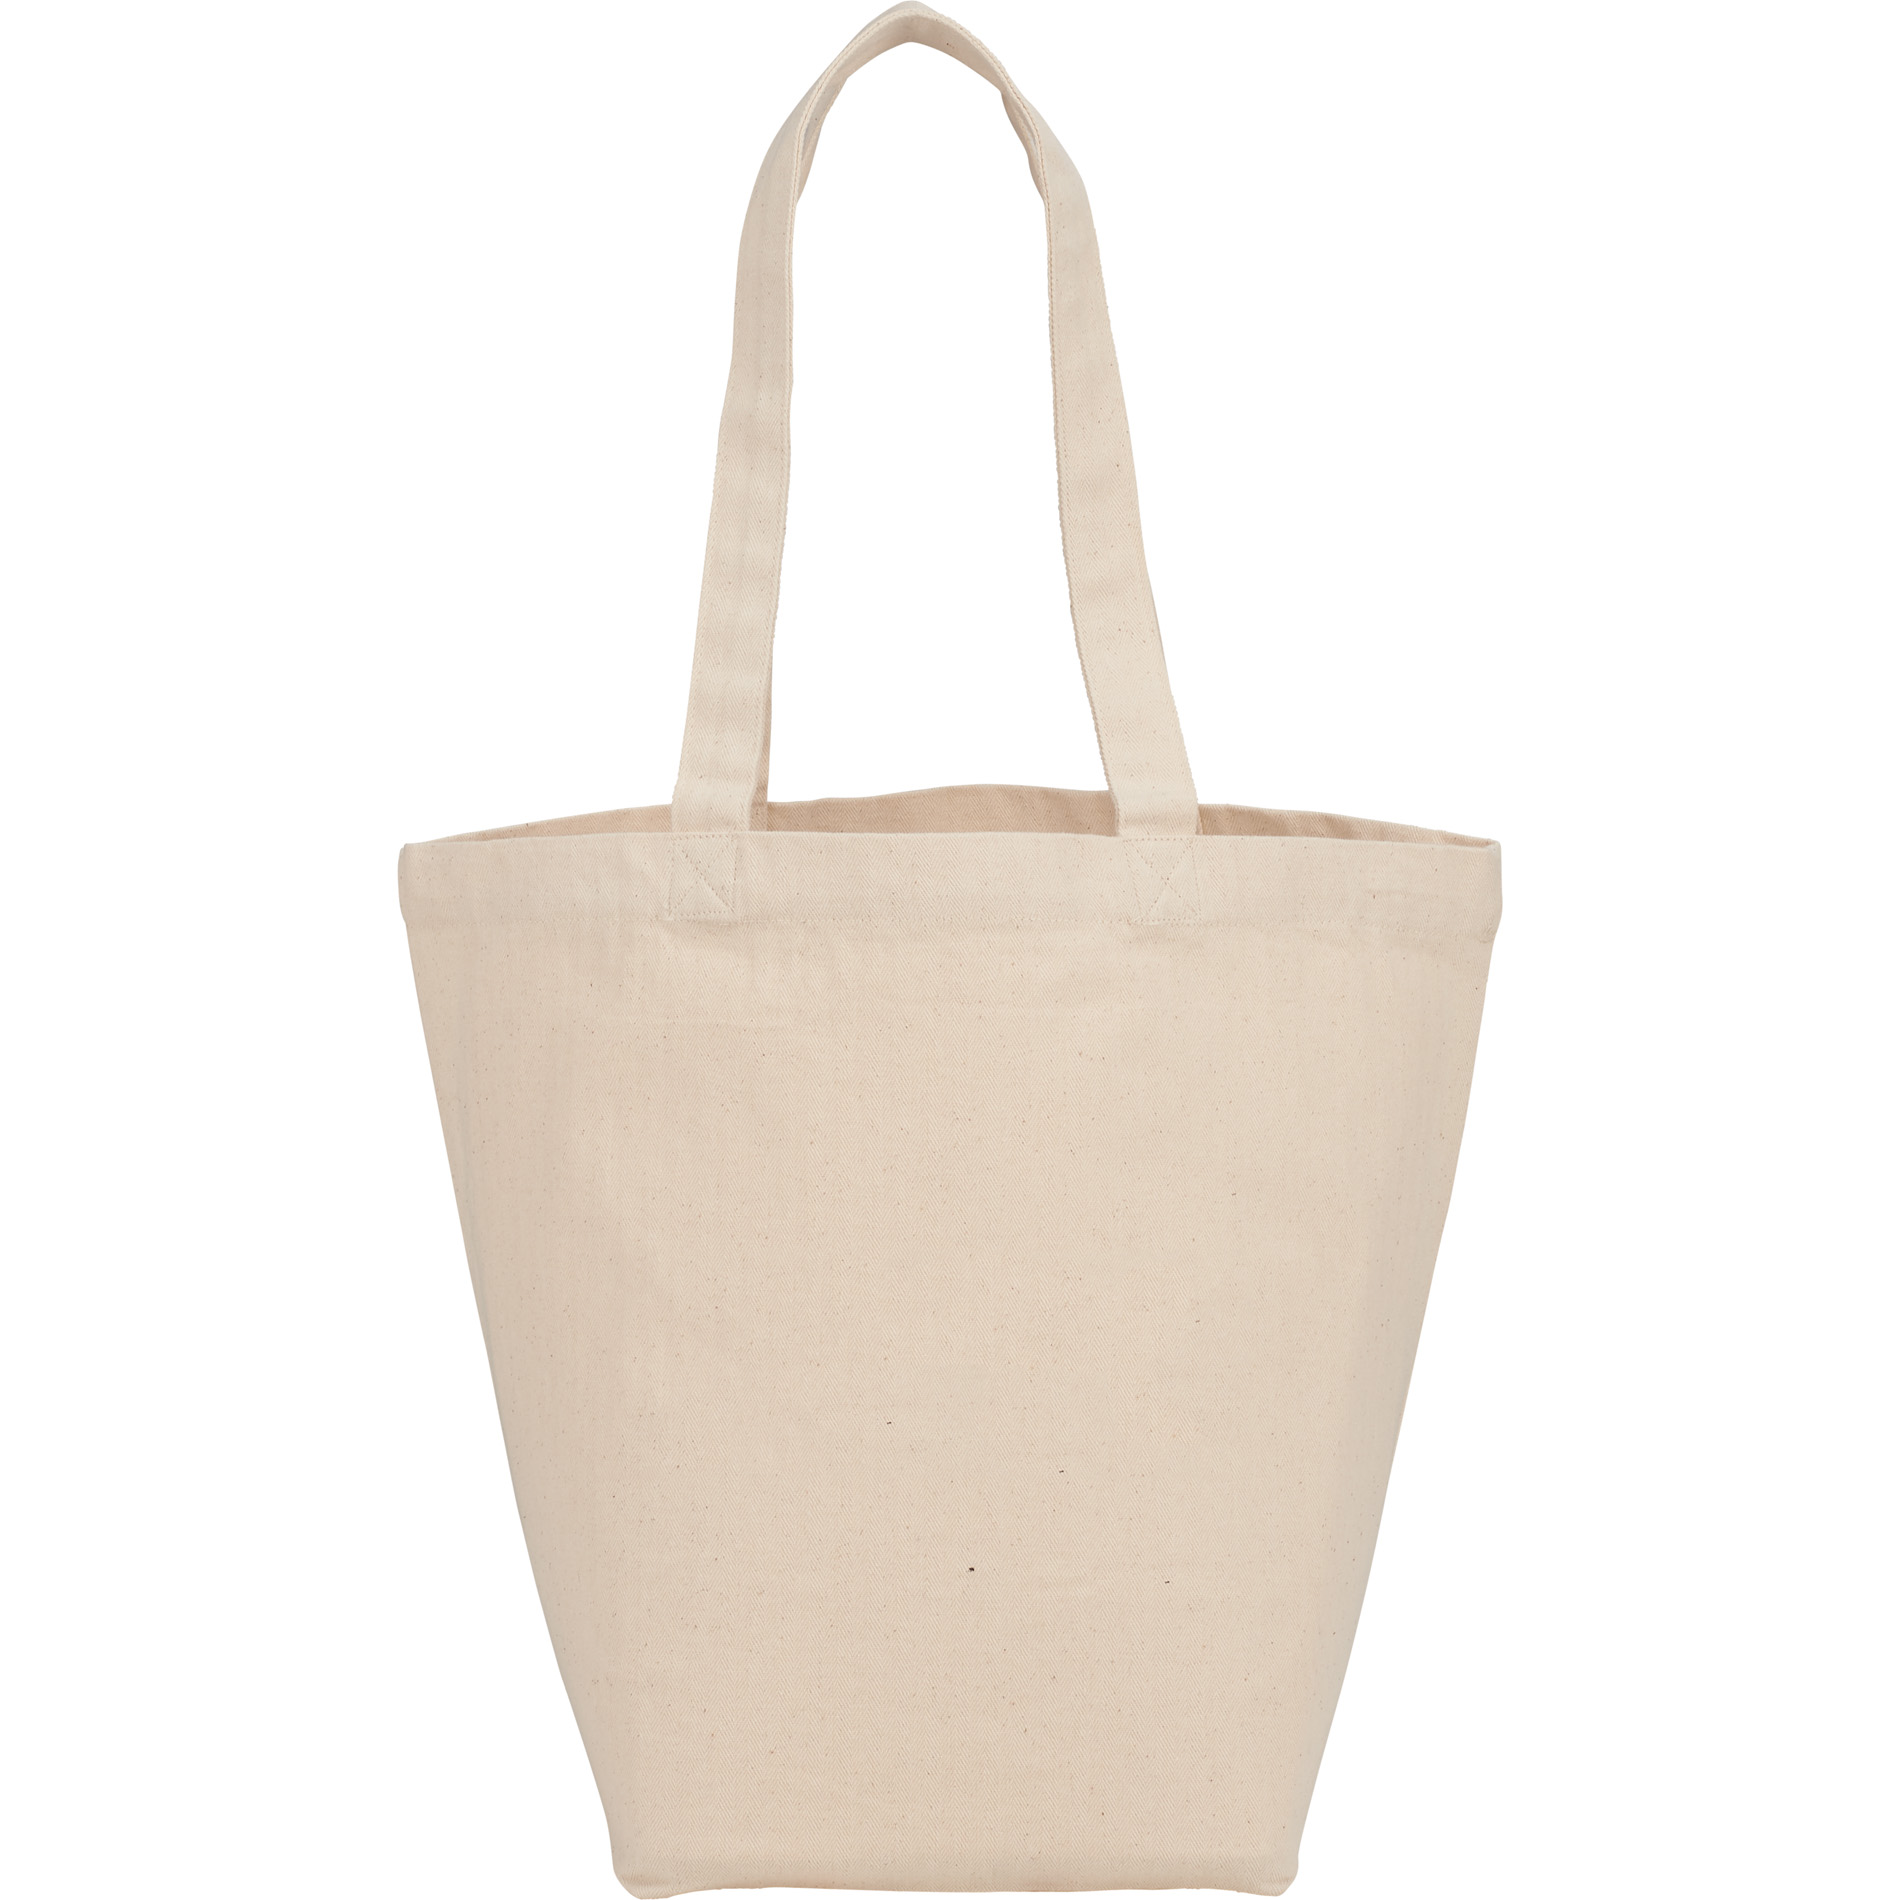 LEEDS 7900-10 - Herringbone 7oz Cotton Canvas Grocery Tote